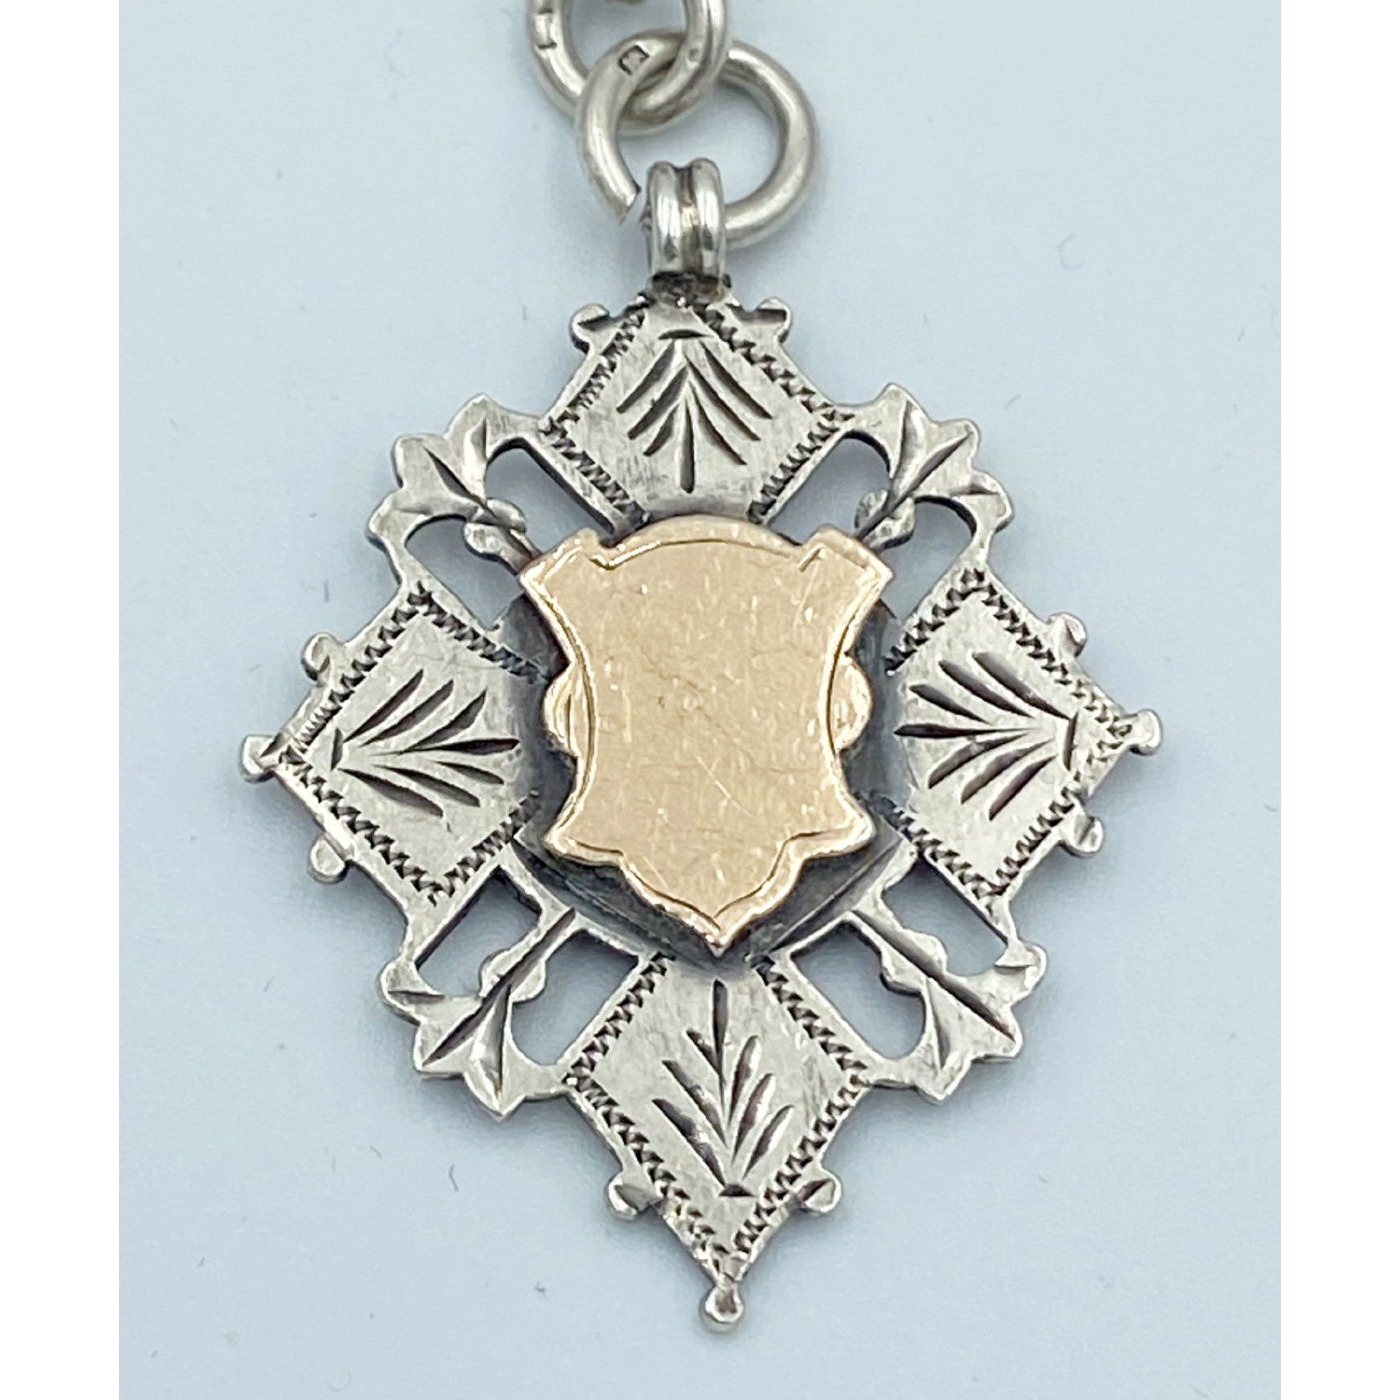 Beautiful Silver English Medal with Gold Center